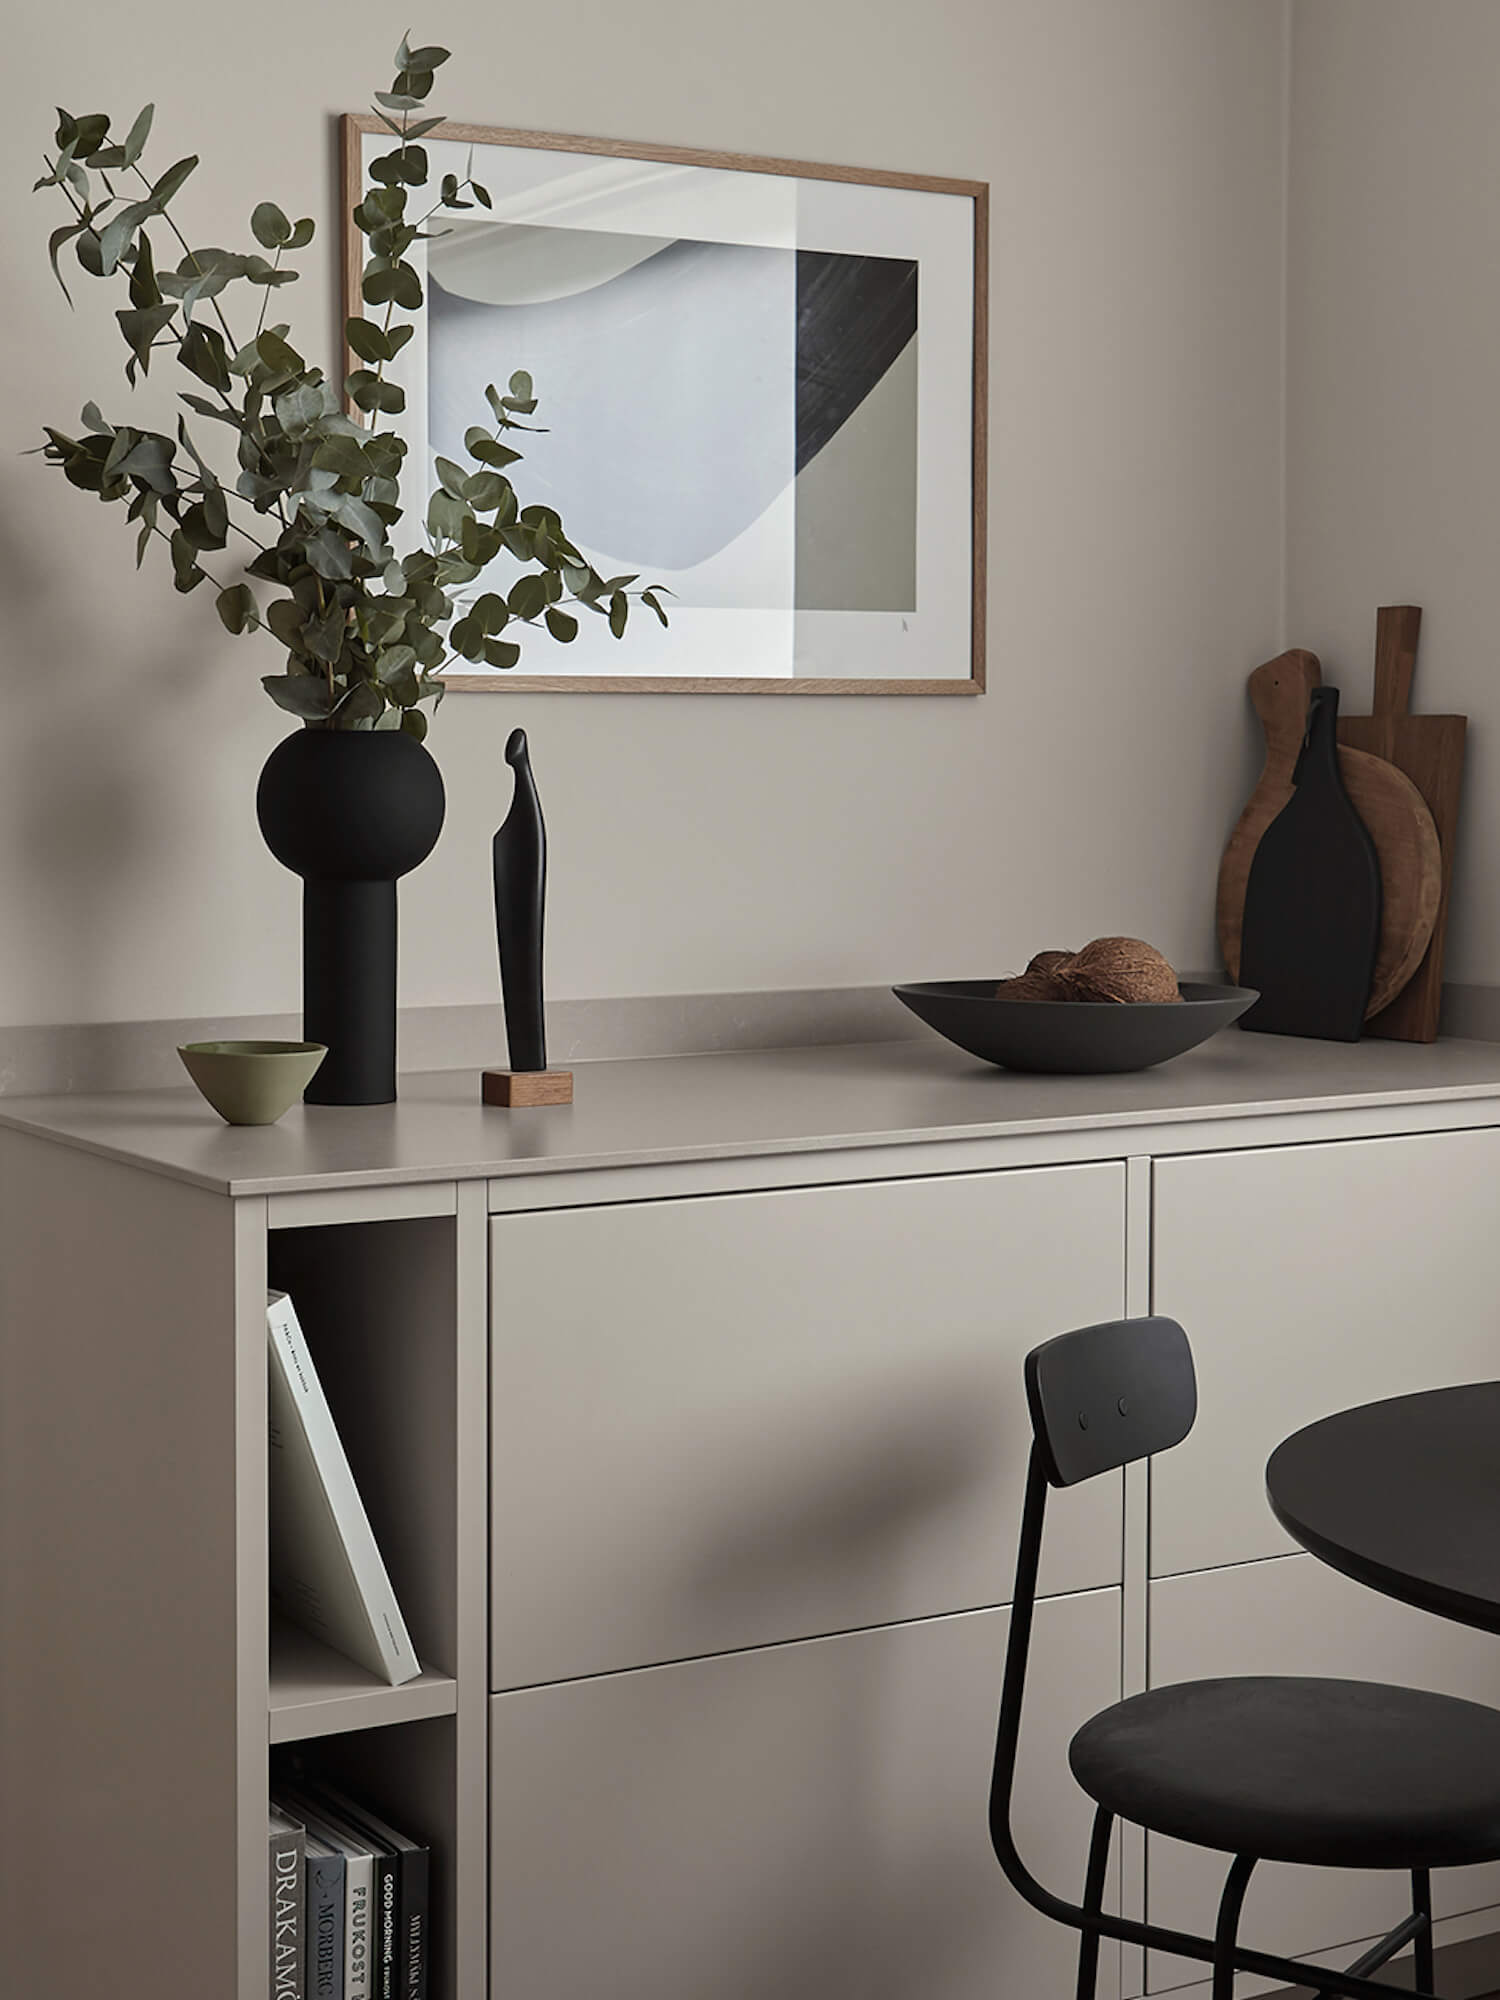 est living nordic style kitchen nordiska kok minimalist kitchen